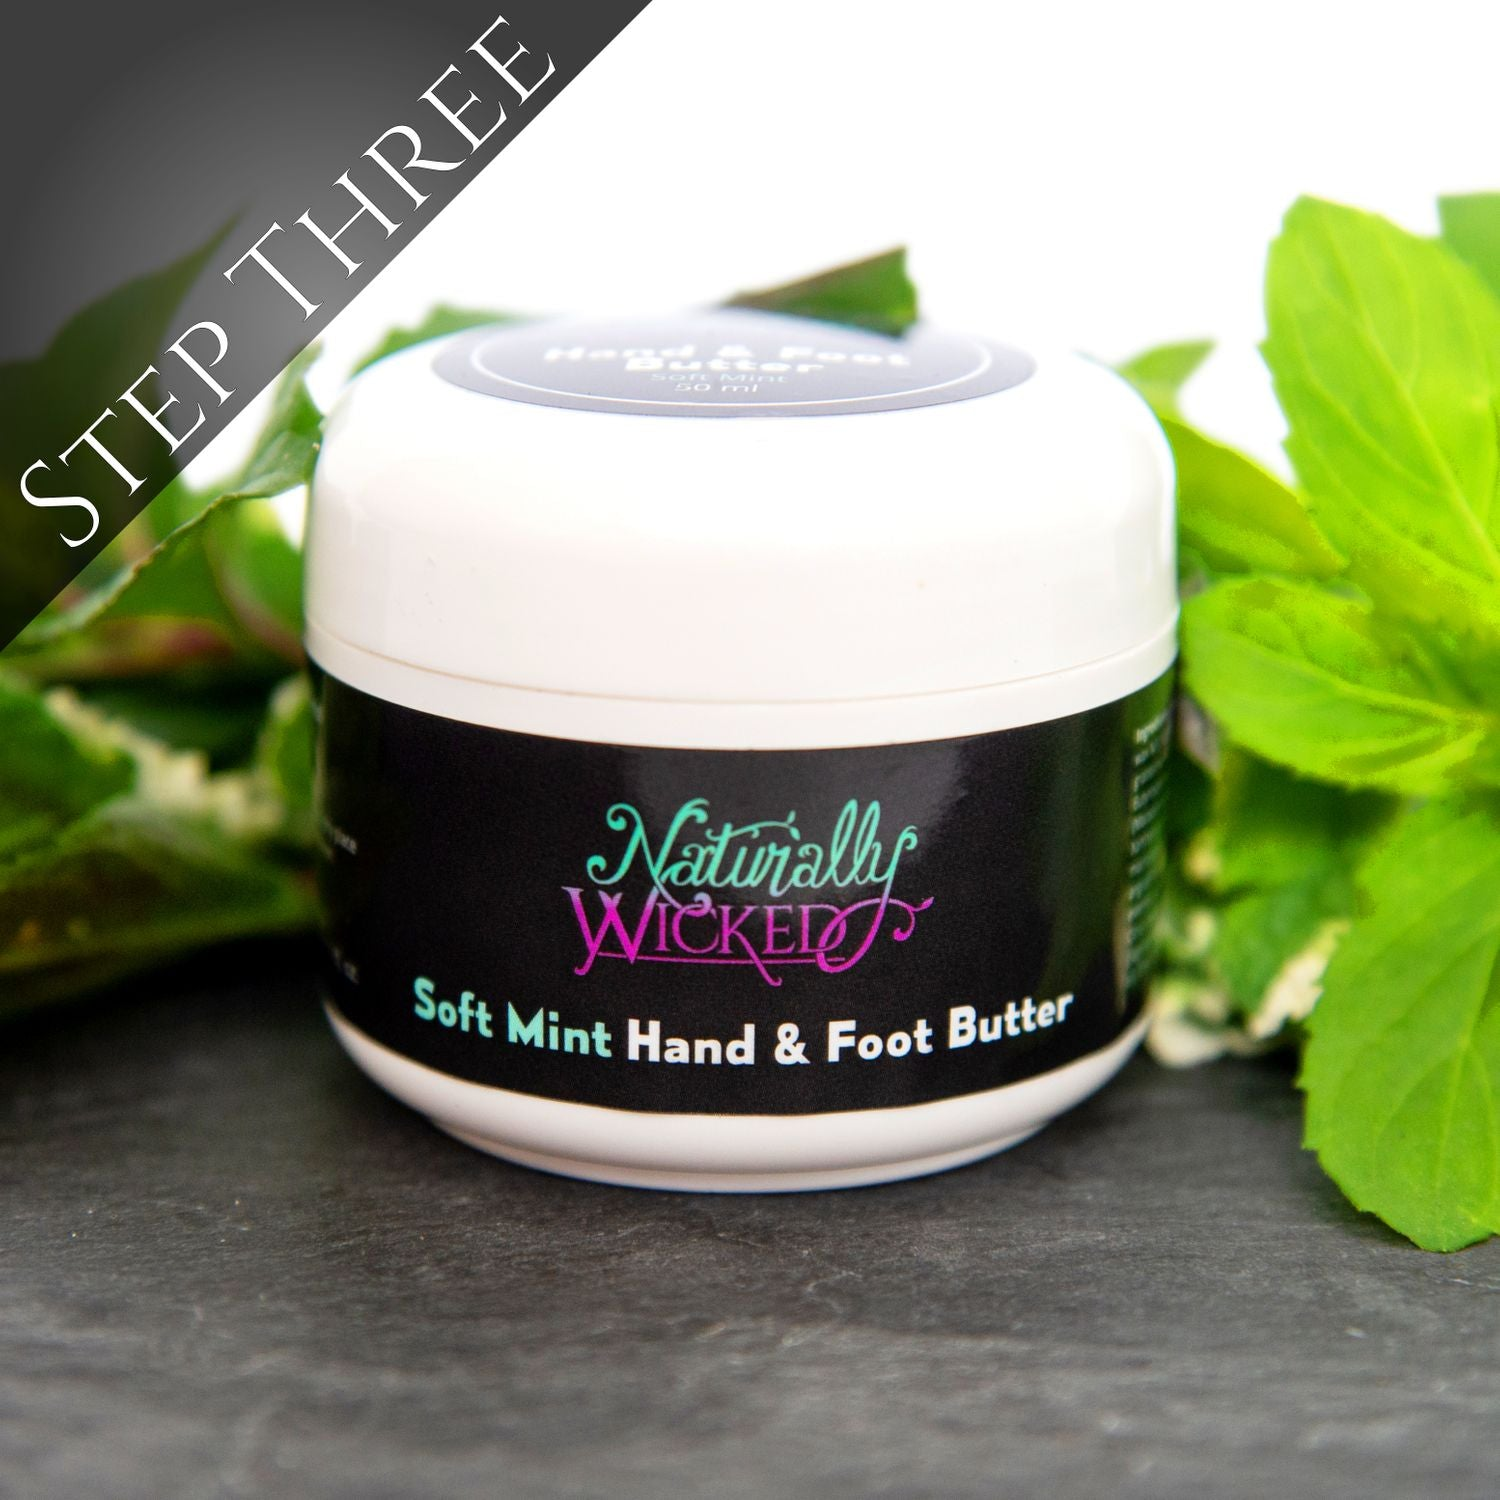 Naturally Wicked Soft Mint Hand & Foot Butter Amongst Hydrating Green Mint Leaves - Step 3